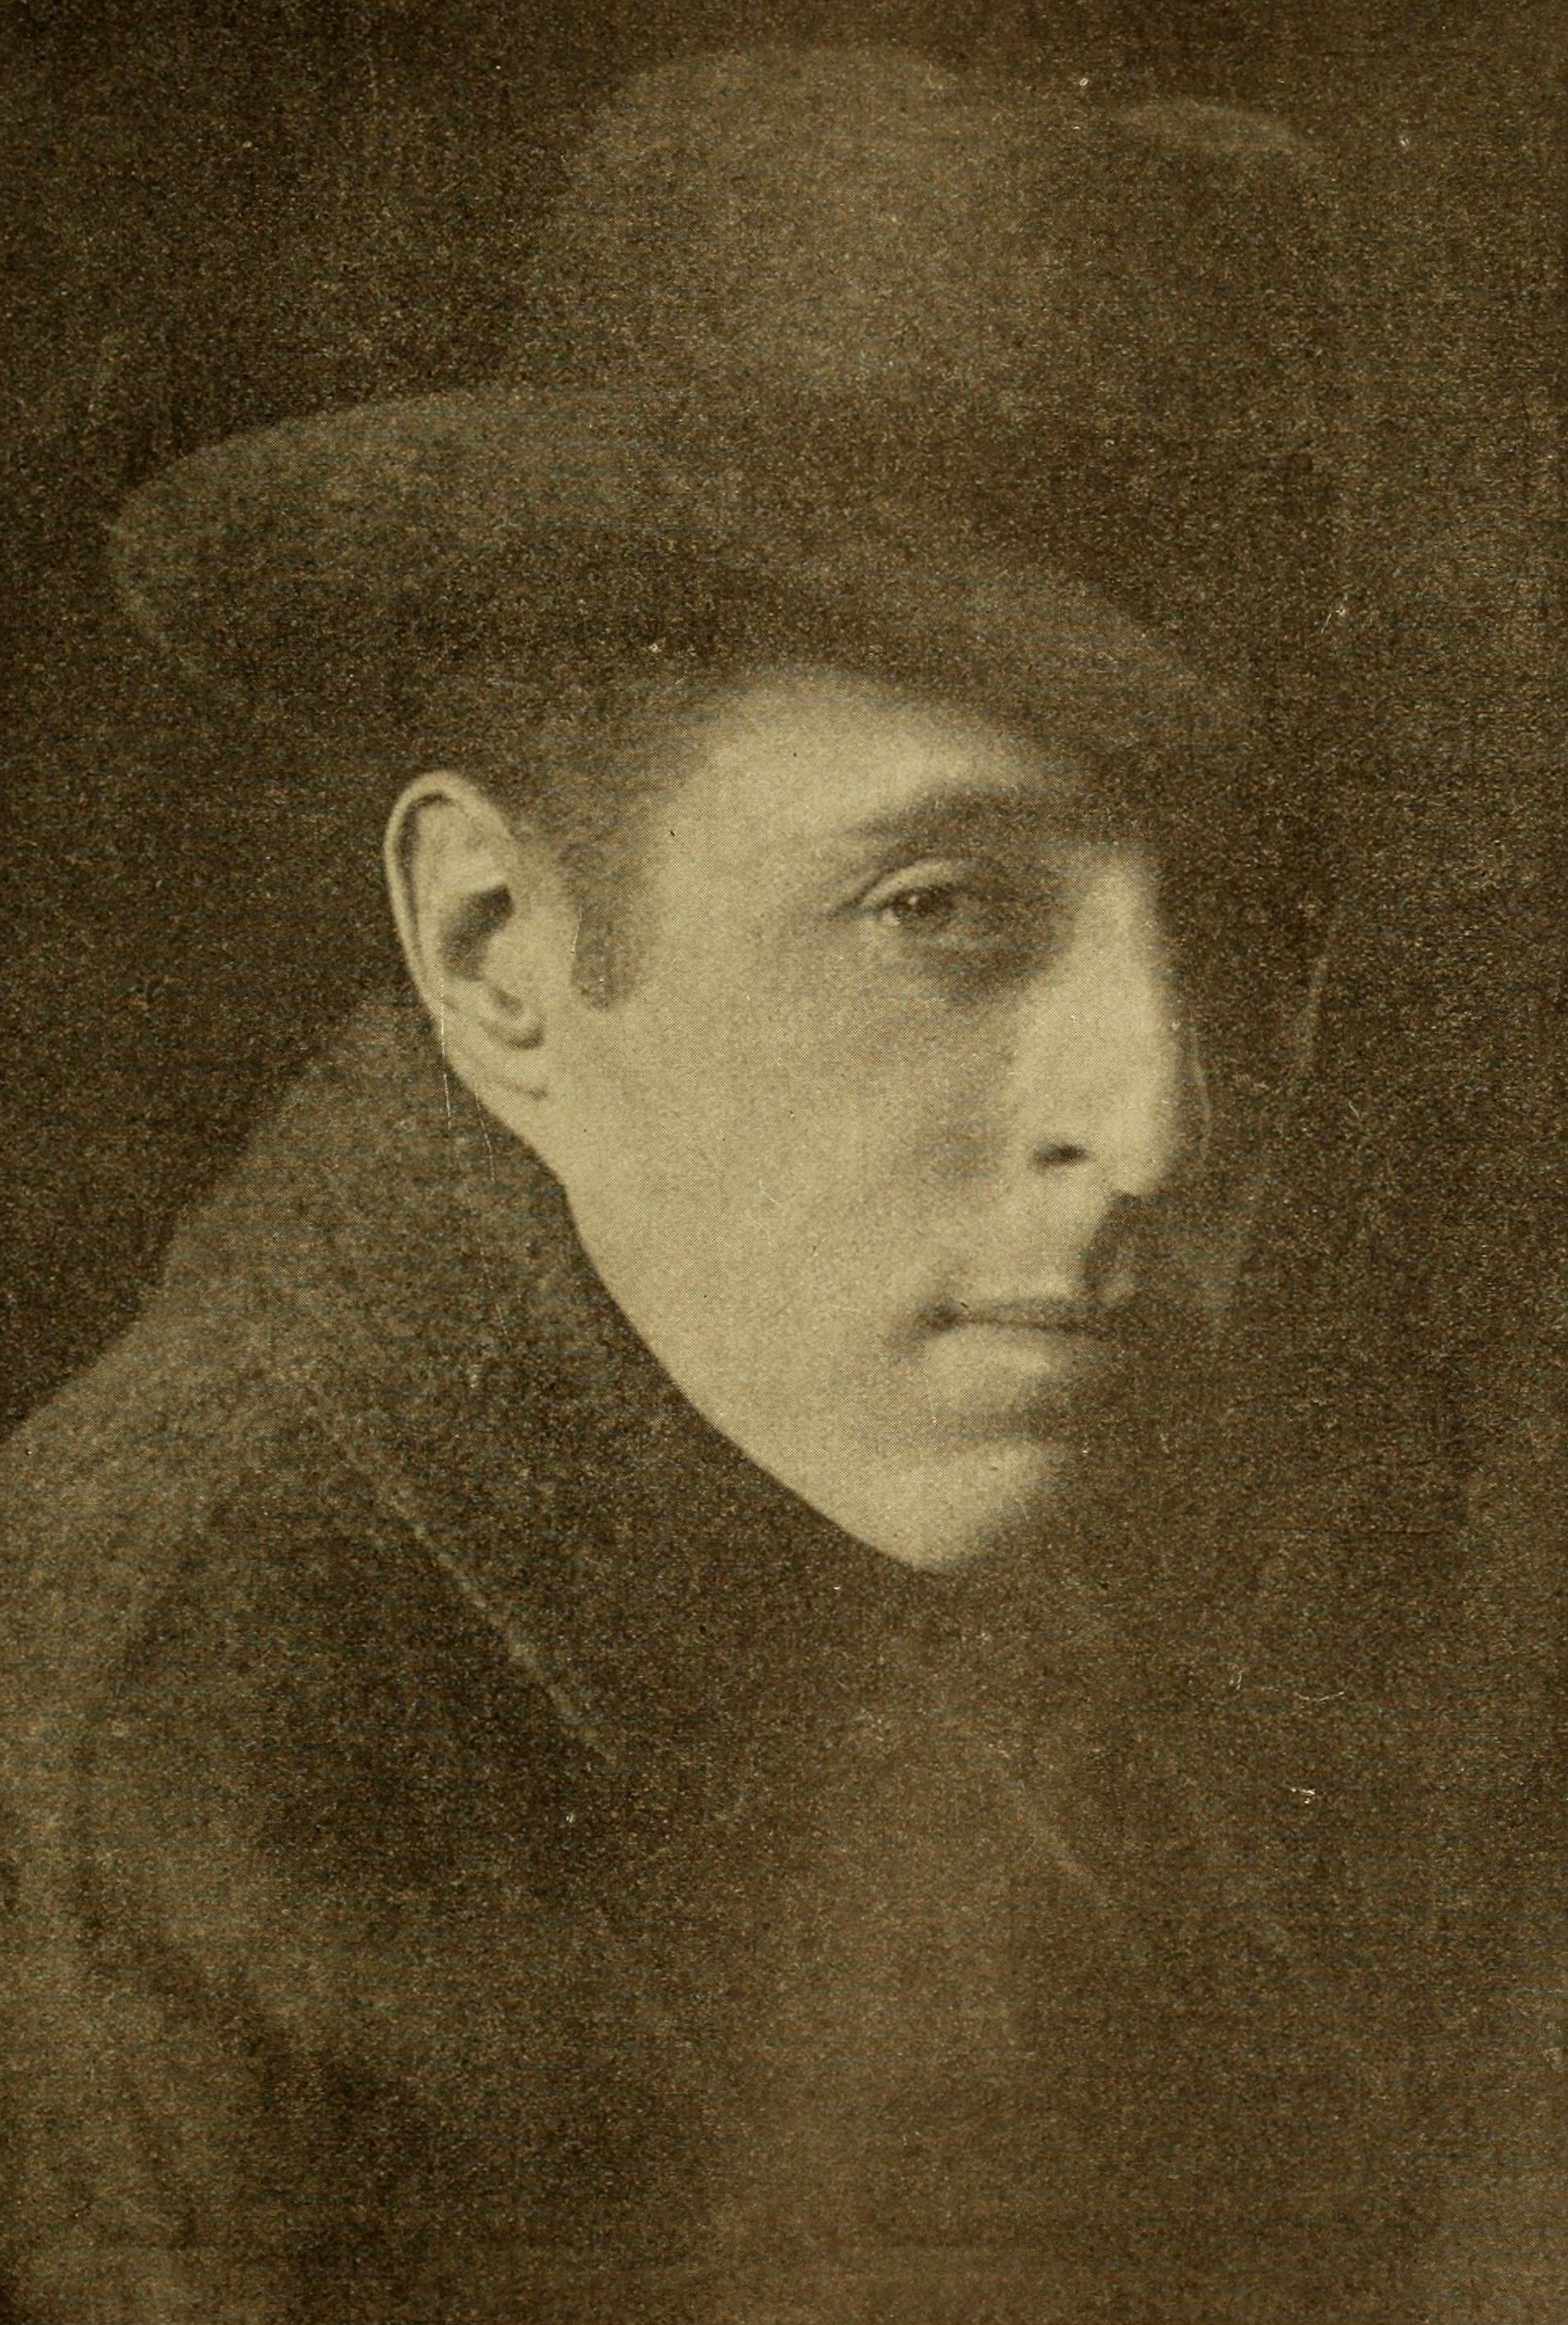 Image of D. W. Griffith from Wikidata